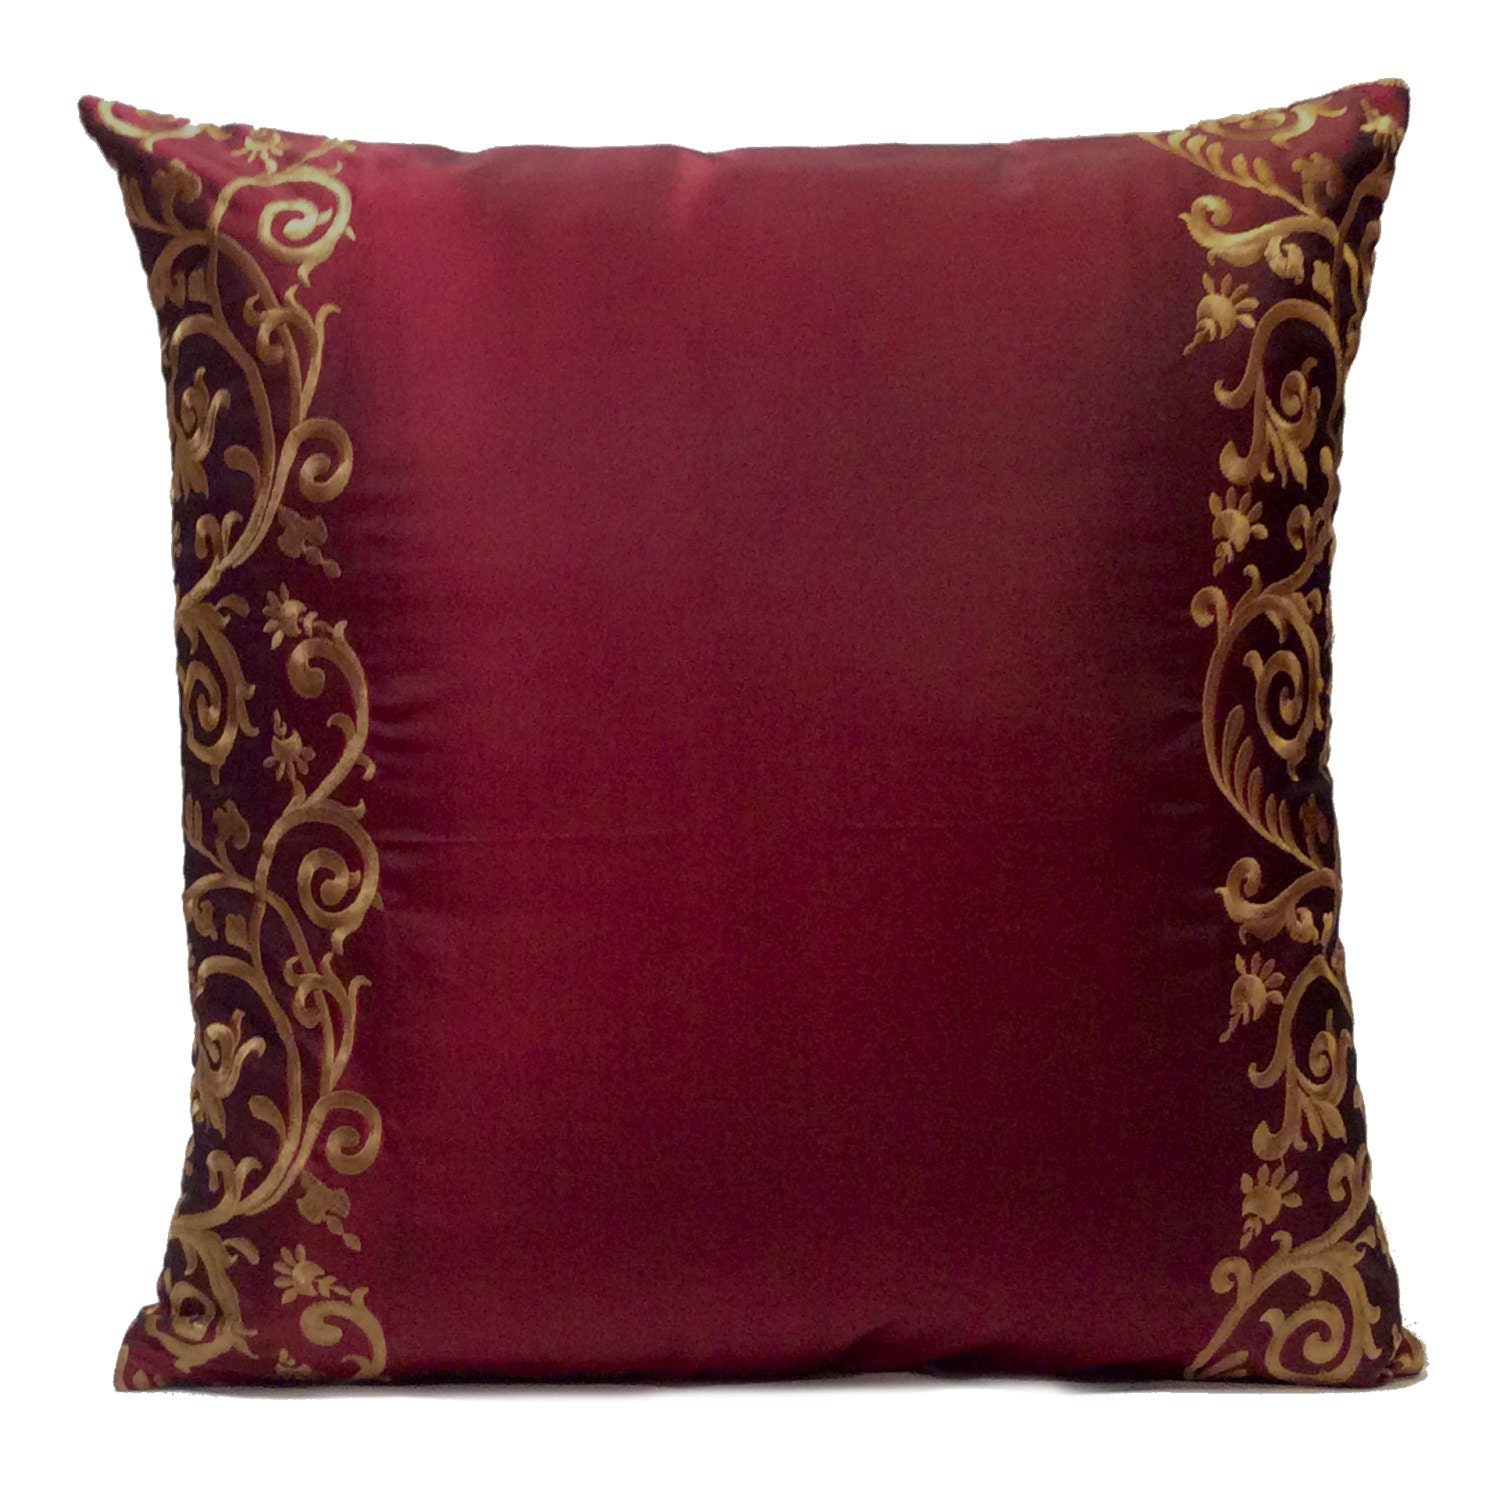 Throw Pillows Maroon : Burgundy Pillow Throw Pillow Cover Decorative Pillow Cover